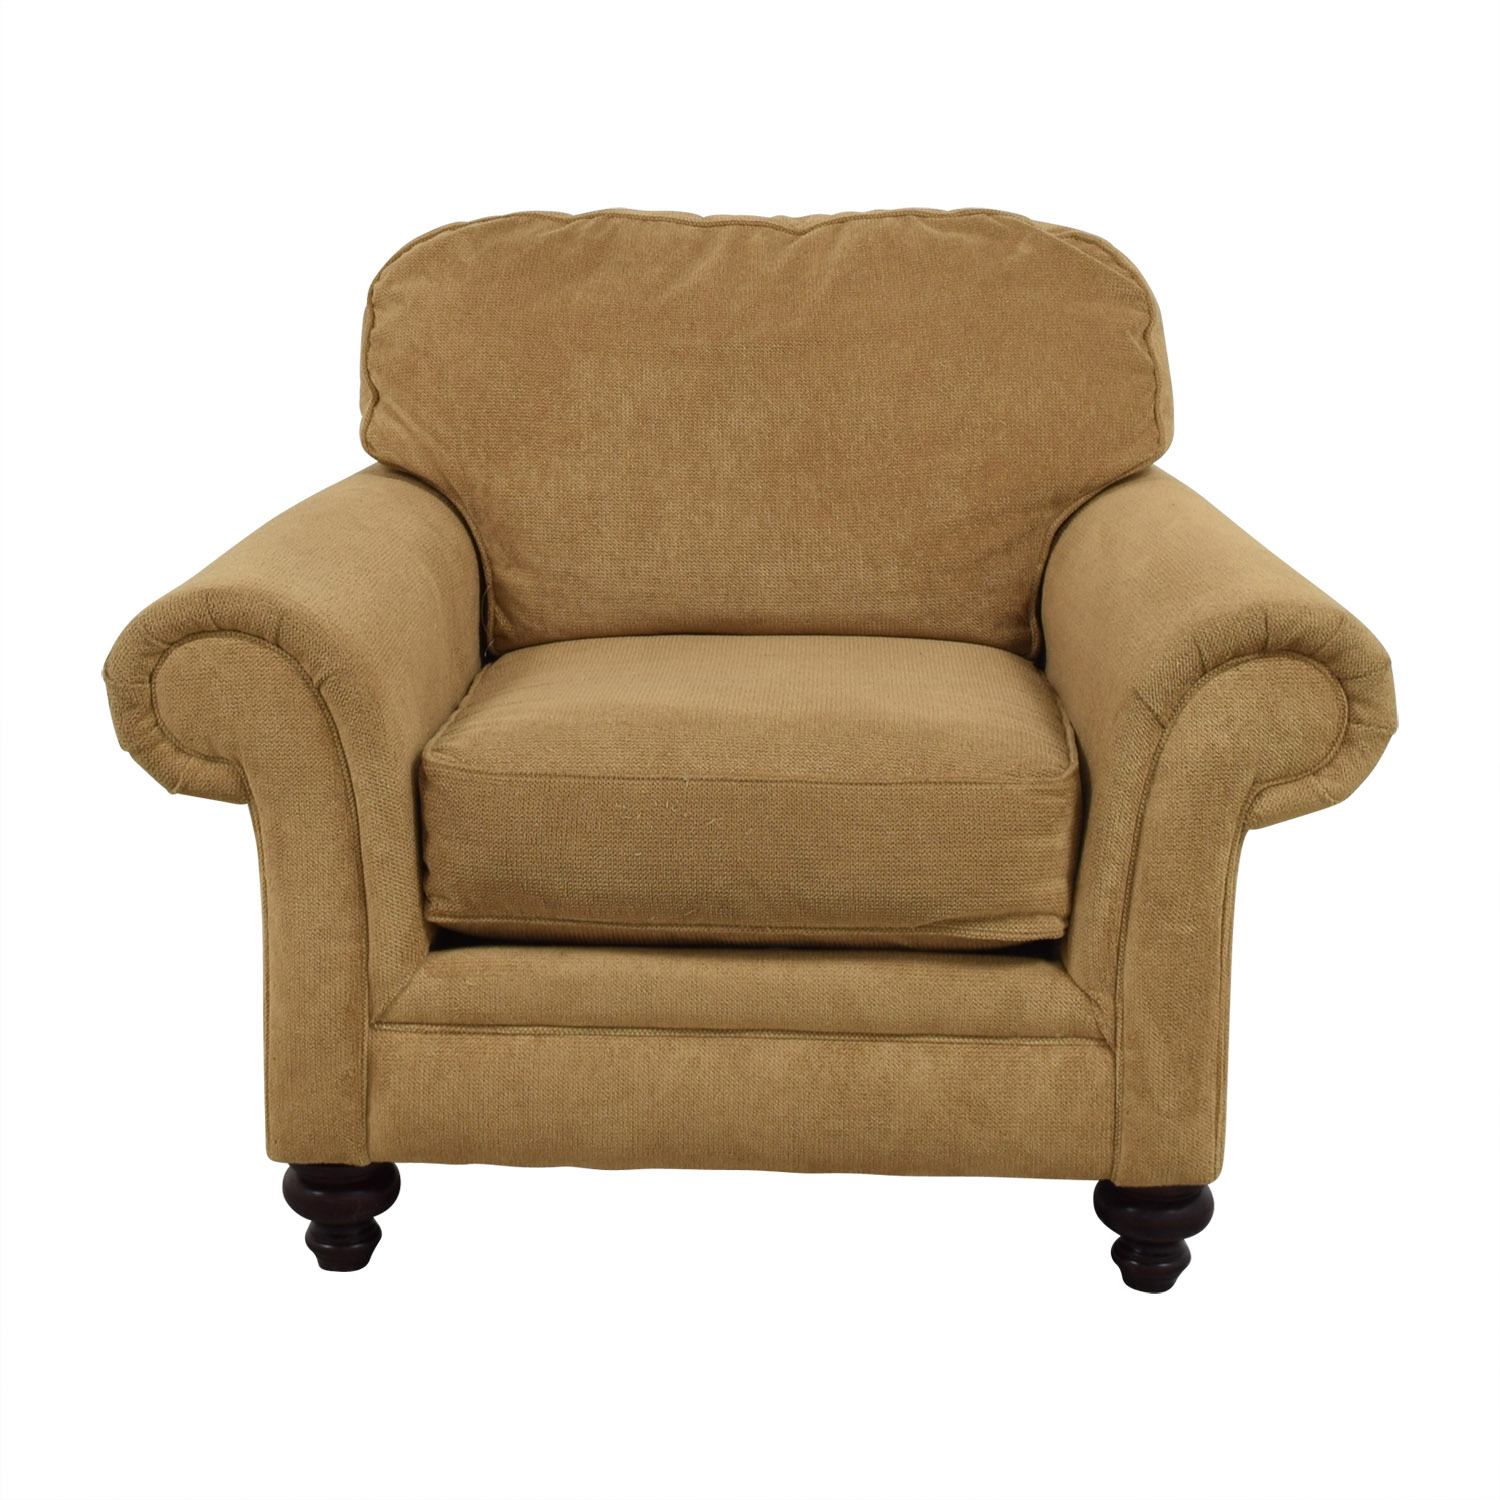 Etonnant 86% OFF   Broyhill Furniture Broyhill Mustard Yellow Accent Chair With  Curved Arms / Chairs